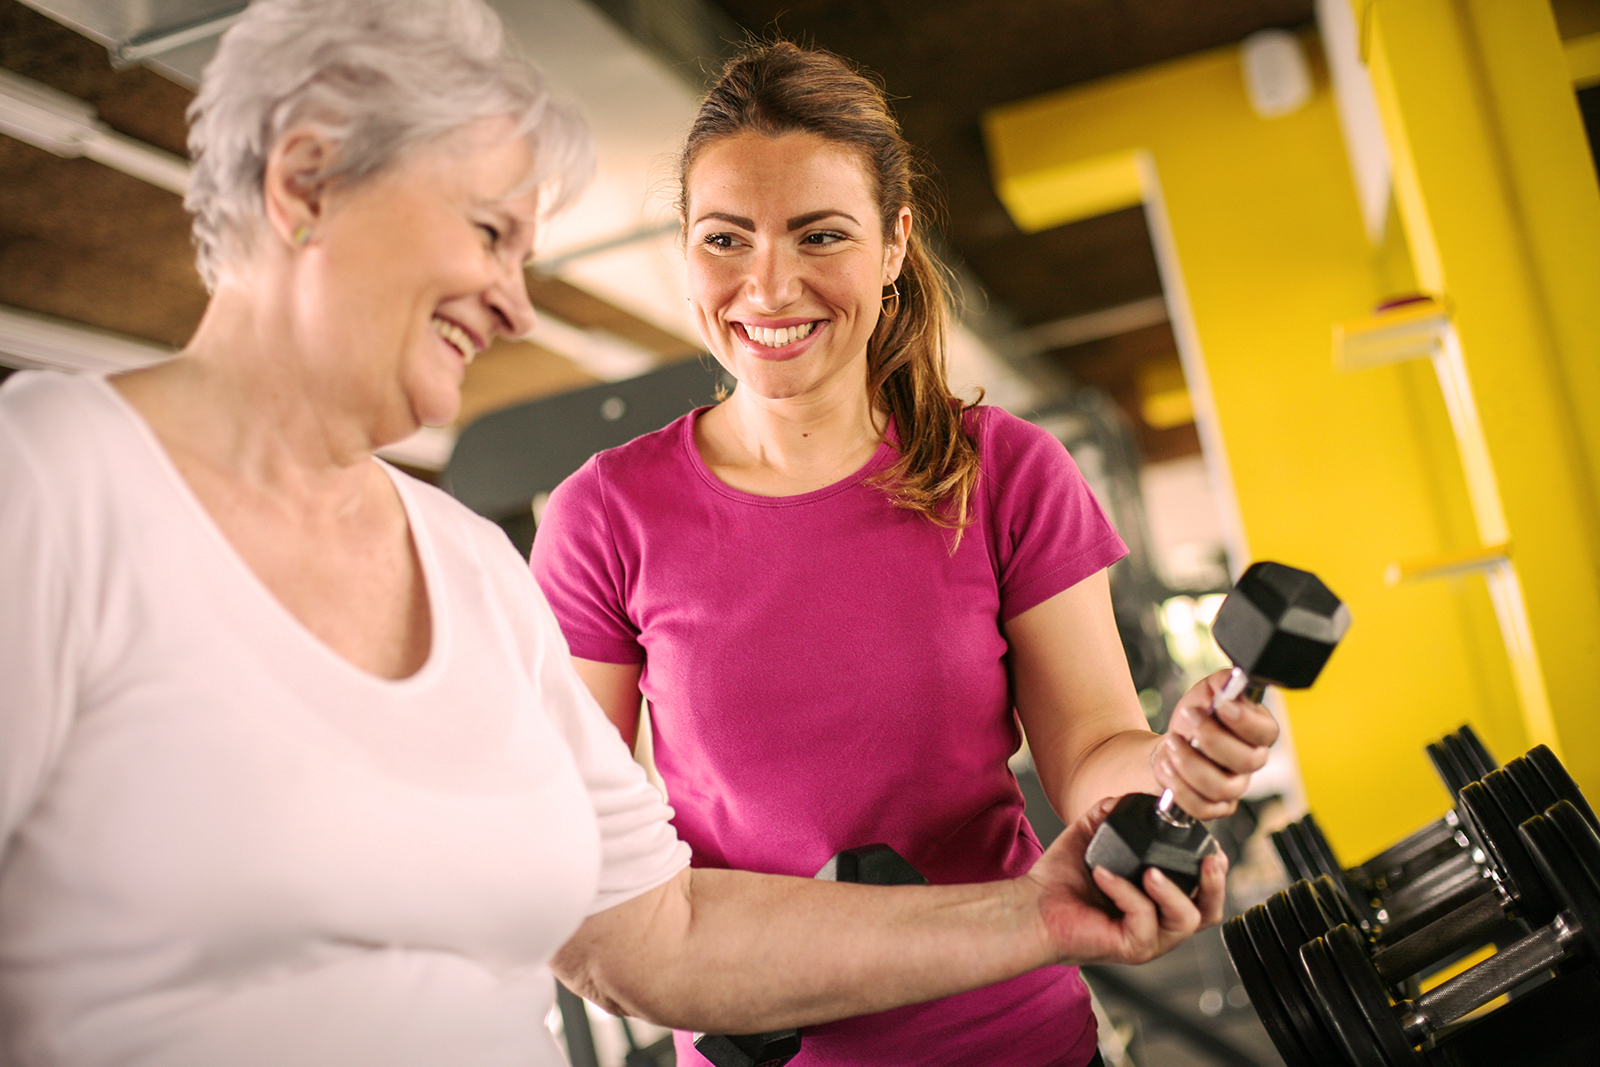 Personal trainer and older female client